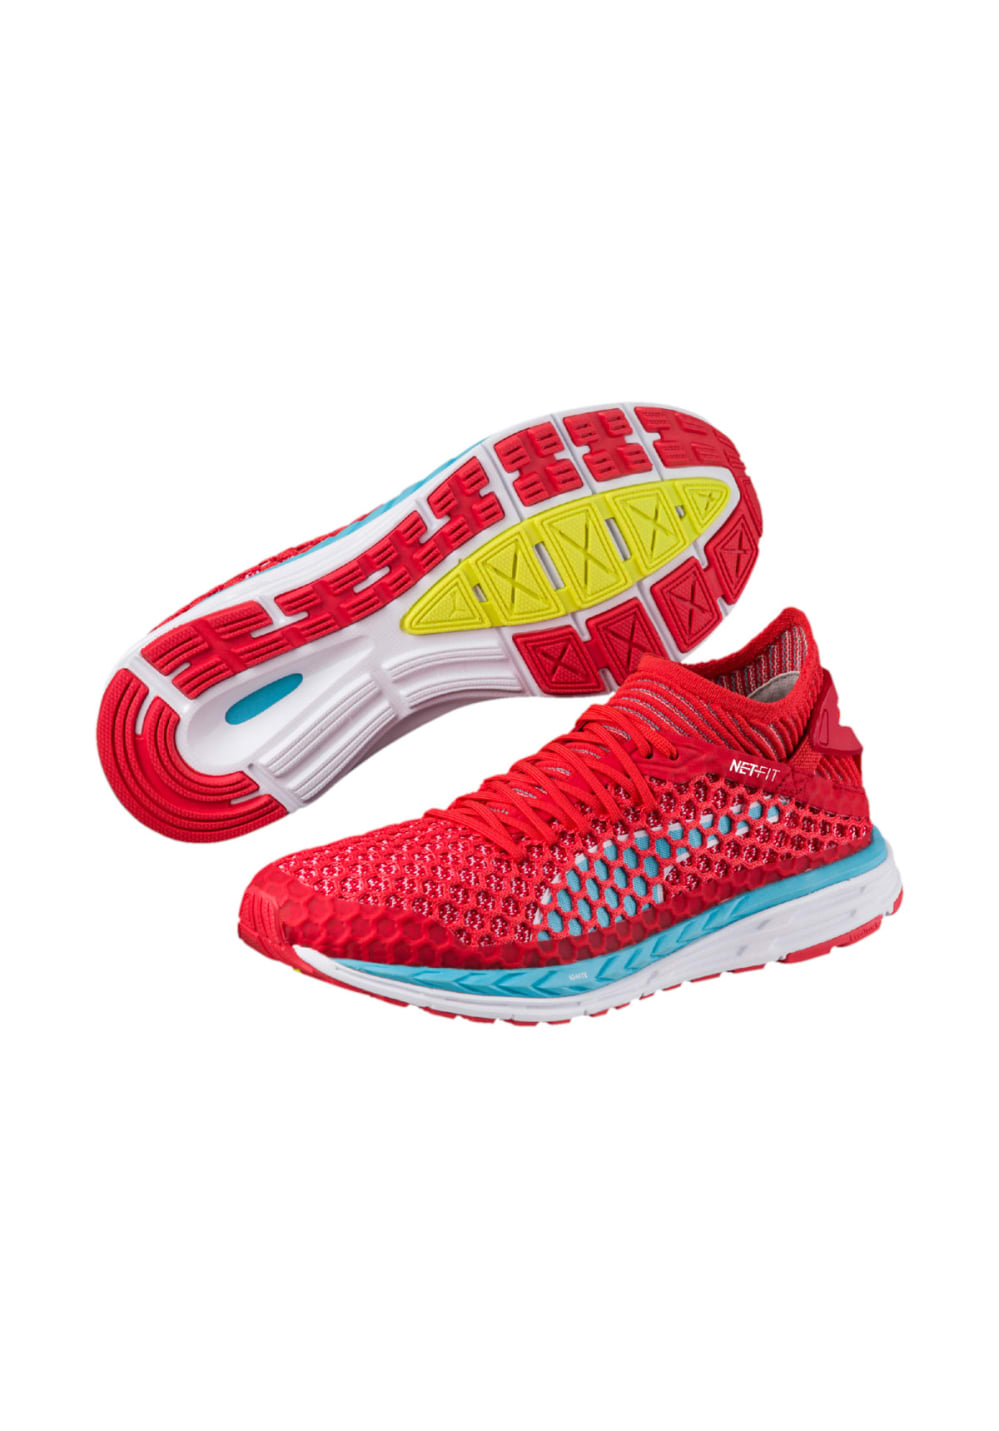 Puma Speed IGNITE NETFIT - Running shoes for Women - Red  7fe6b9d70